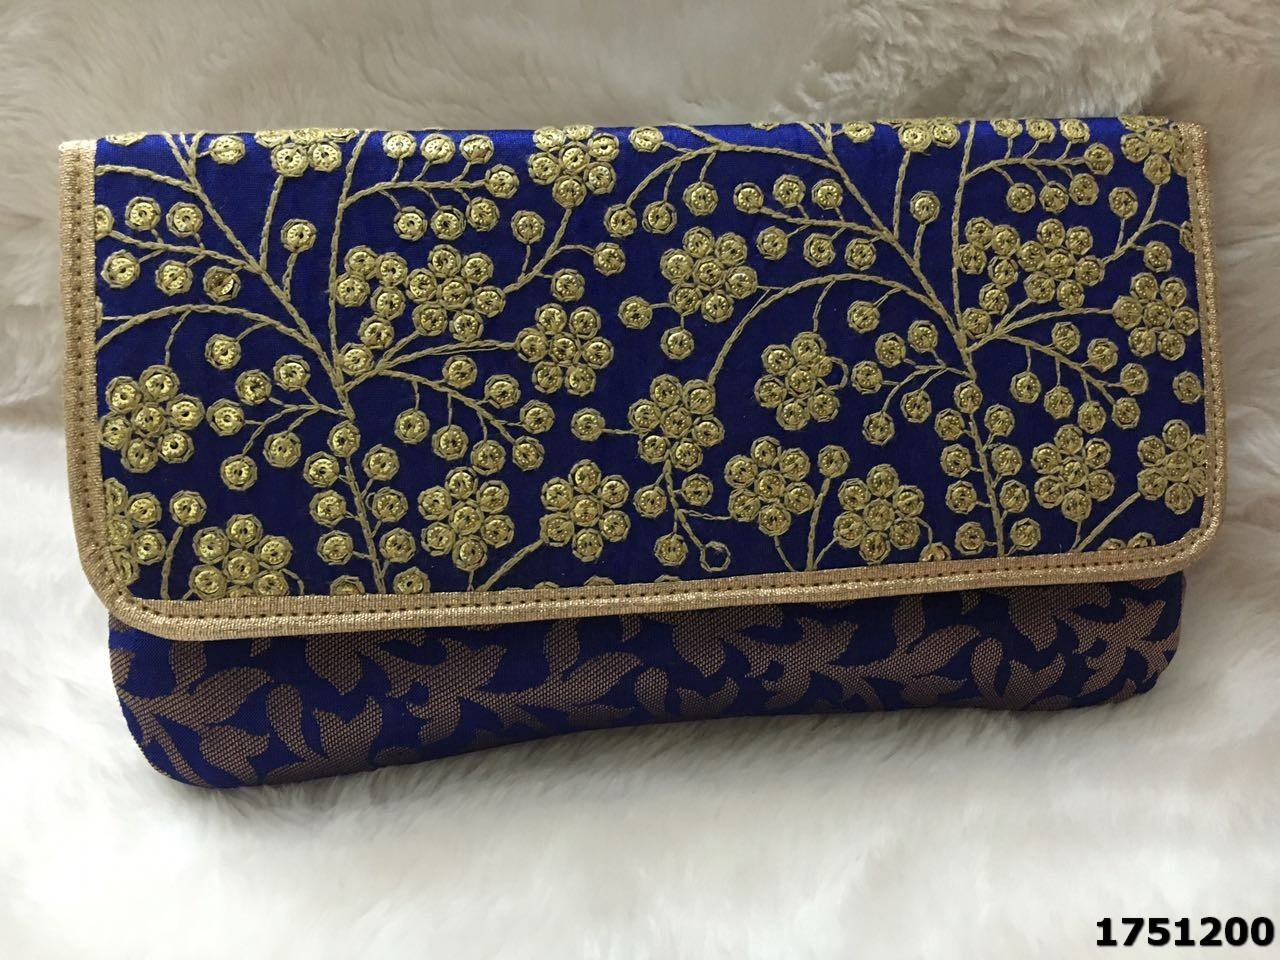 Contemporary Hand Embroidery Evening Clutch Bag